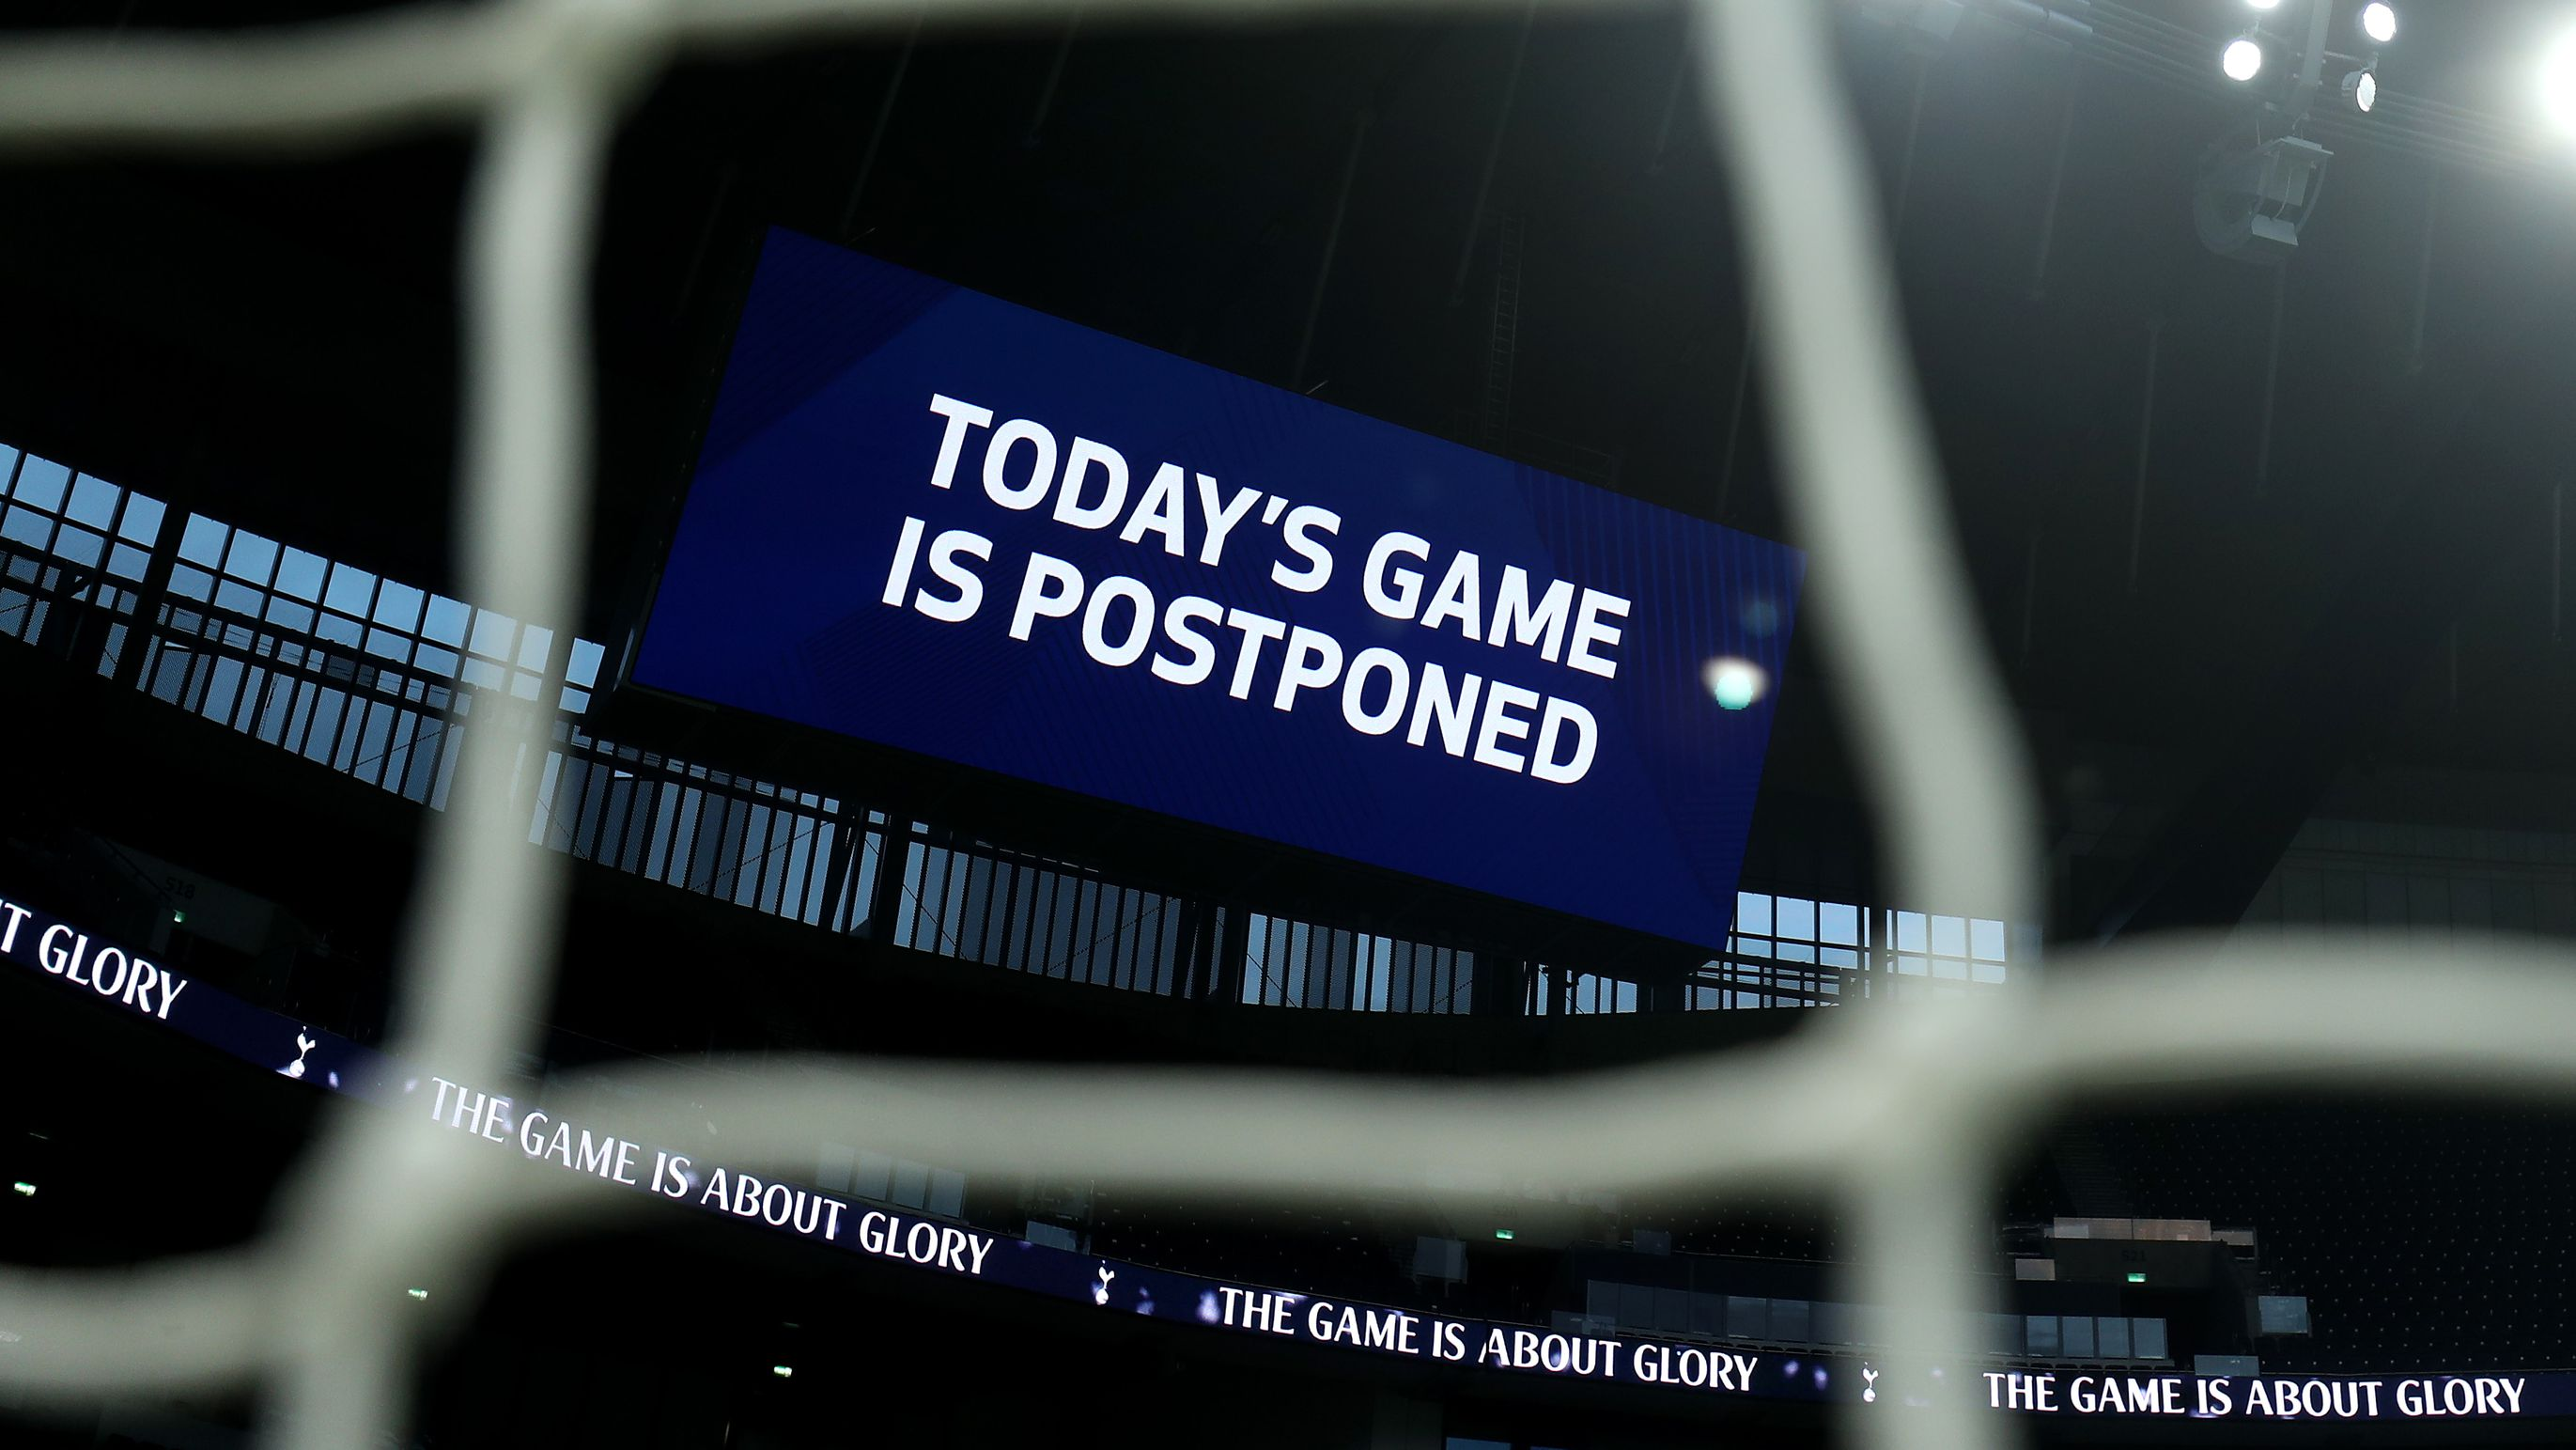 A board inside the stadium displays 'Today's Game is Postponed.'